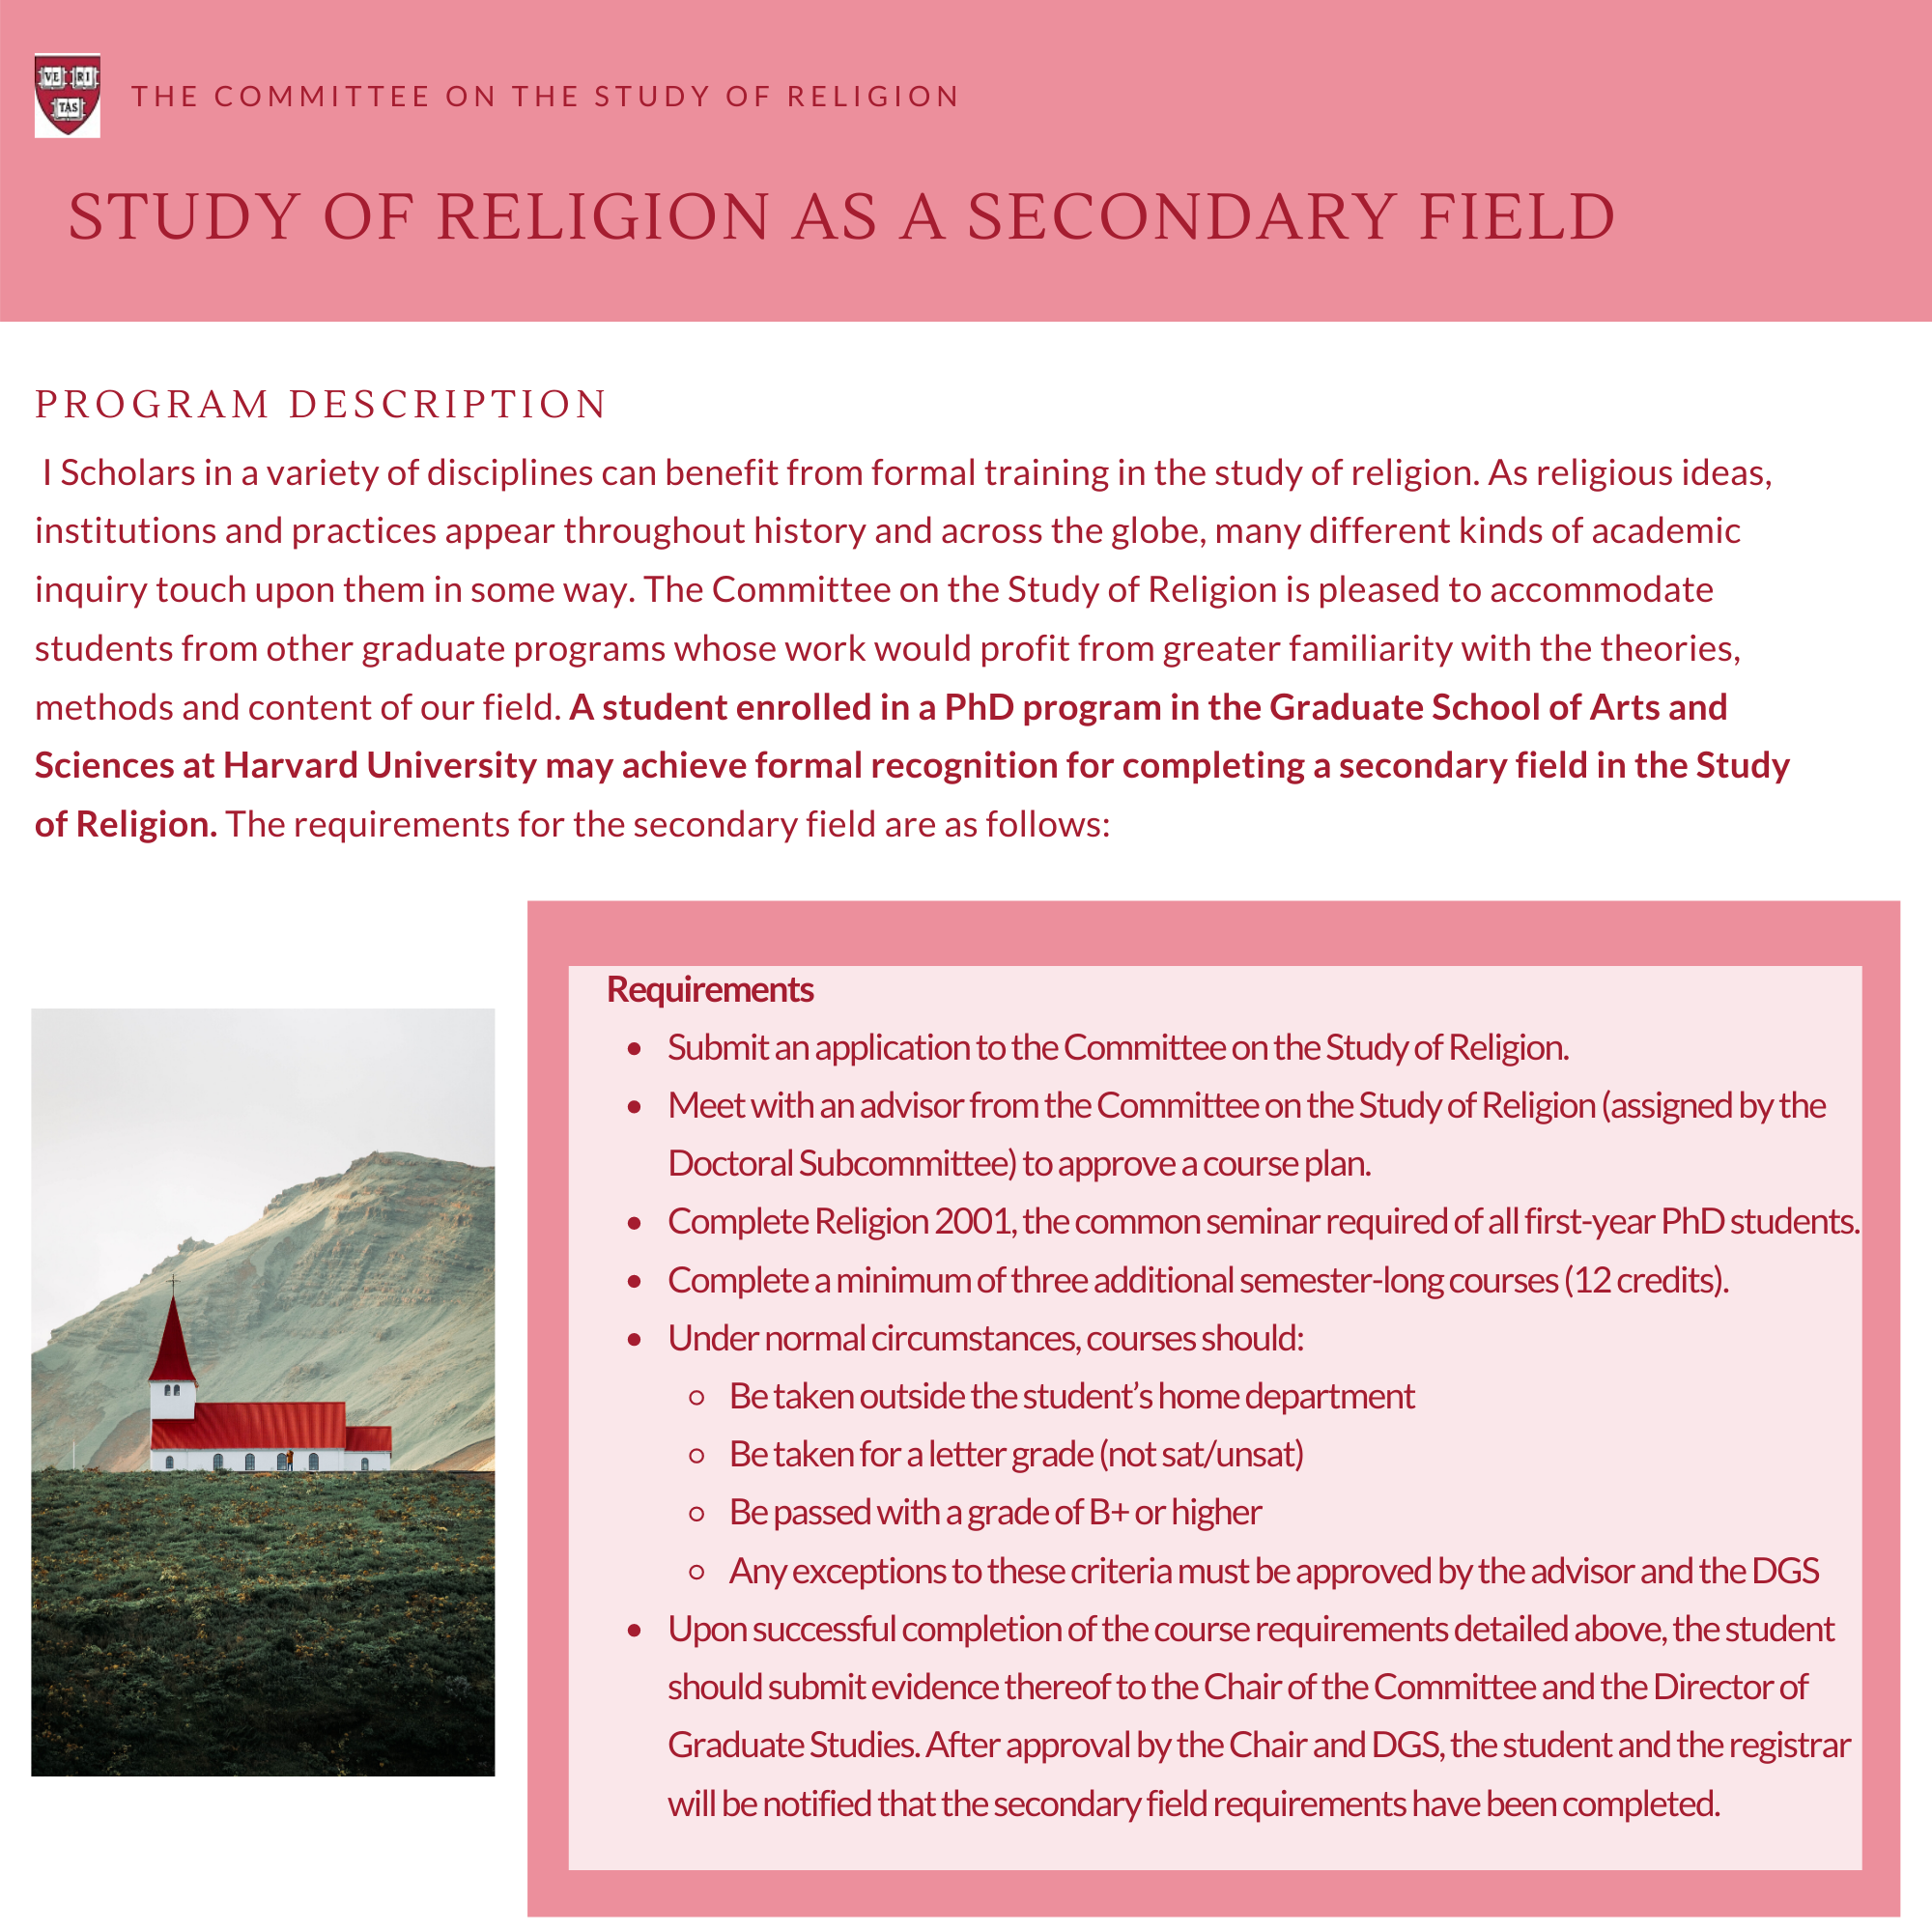 Study of Religion as a Secondary Field